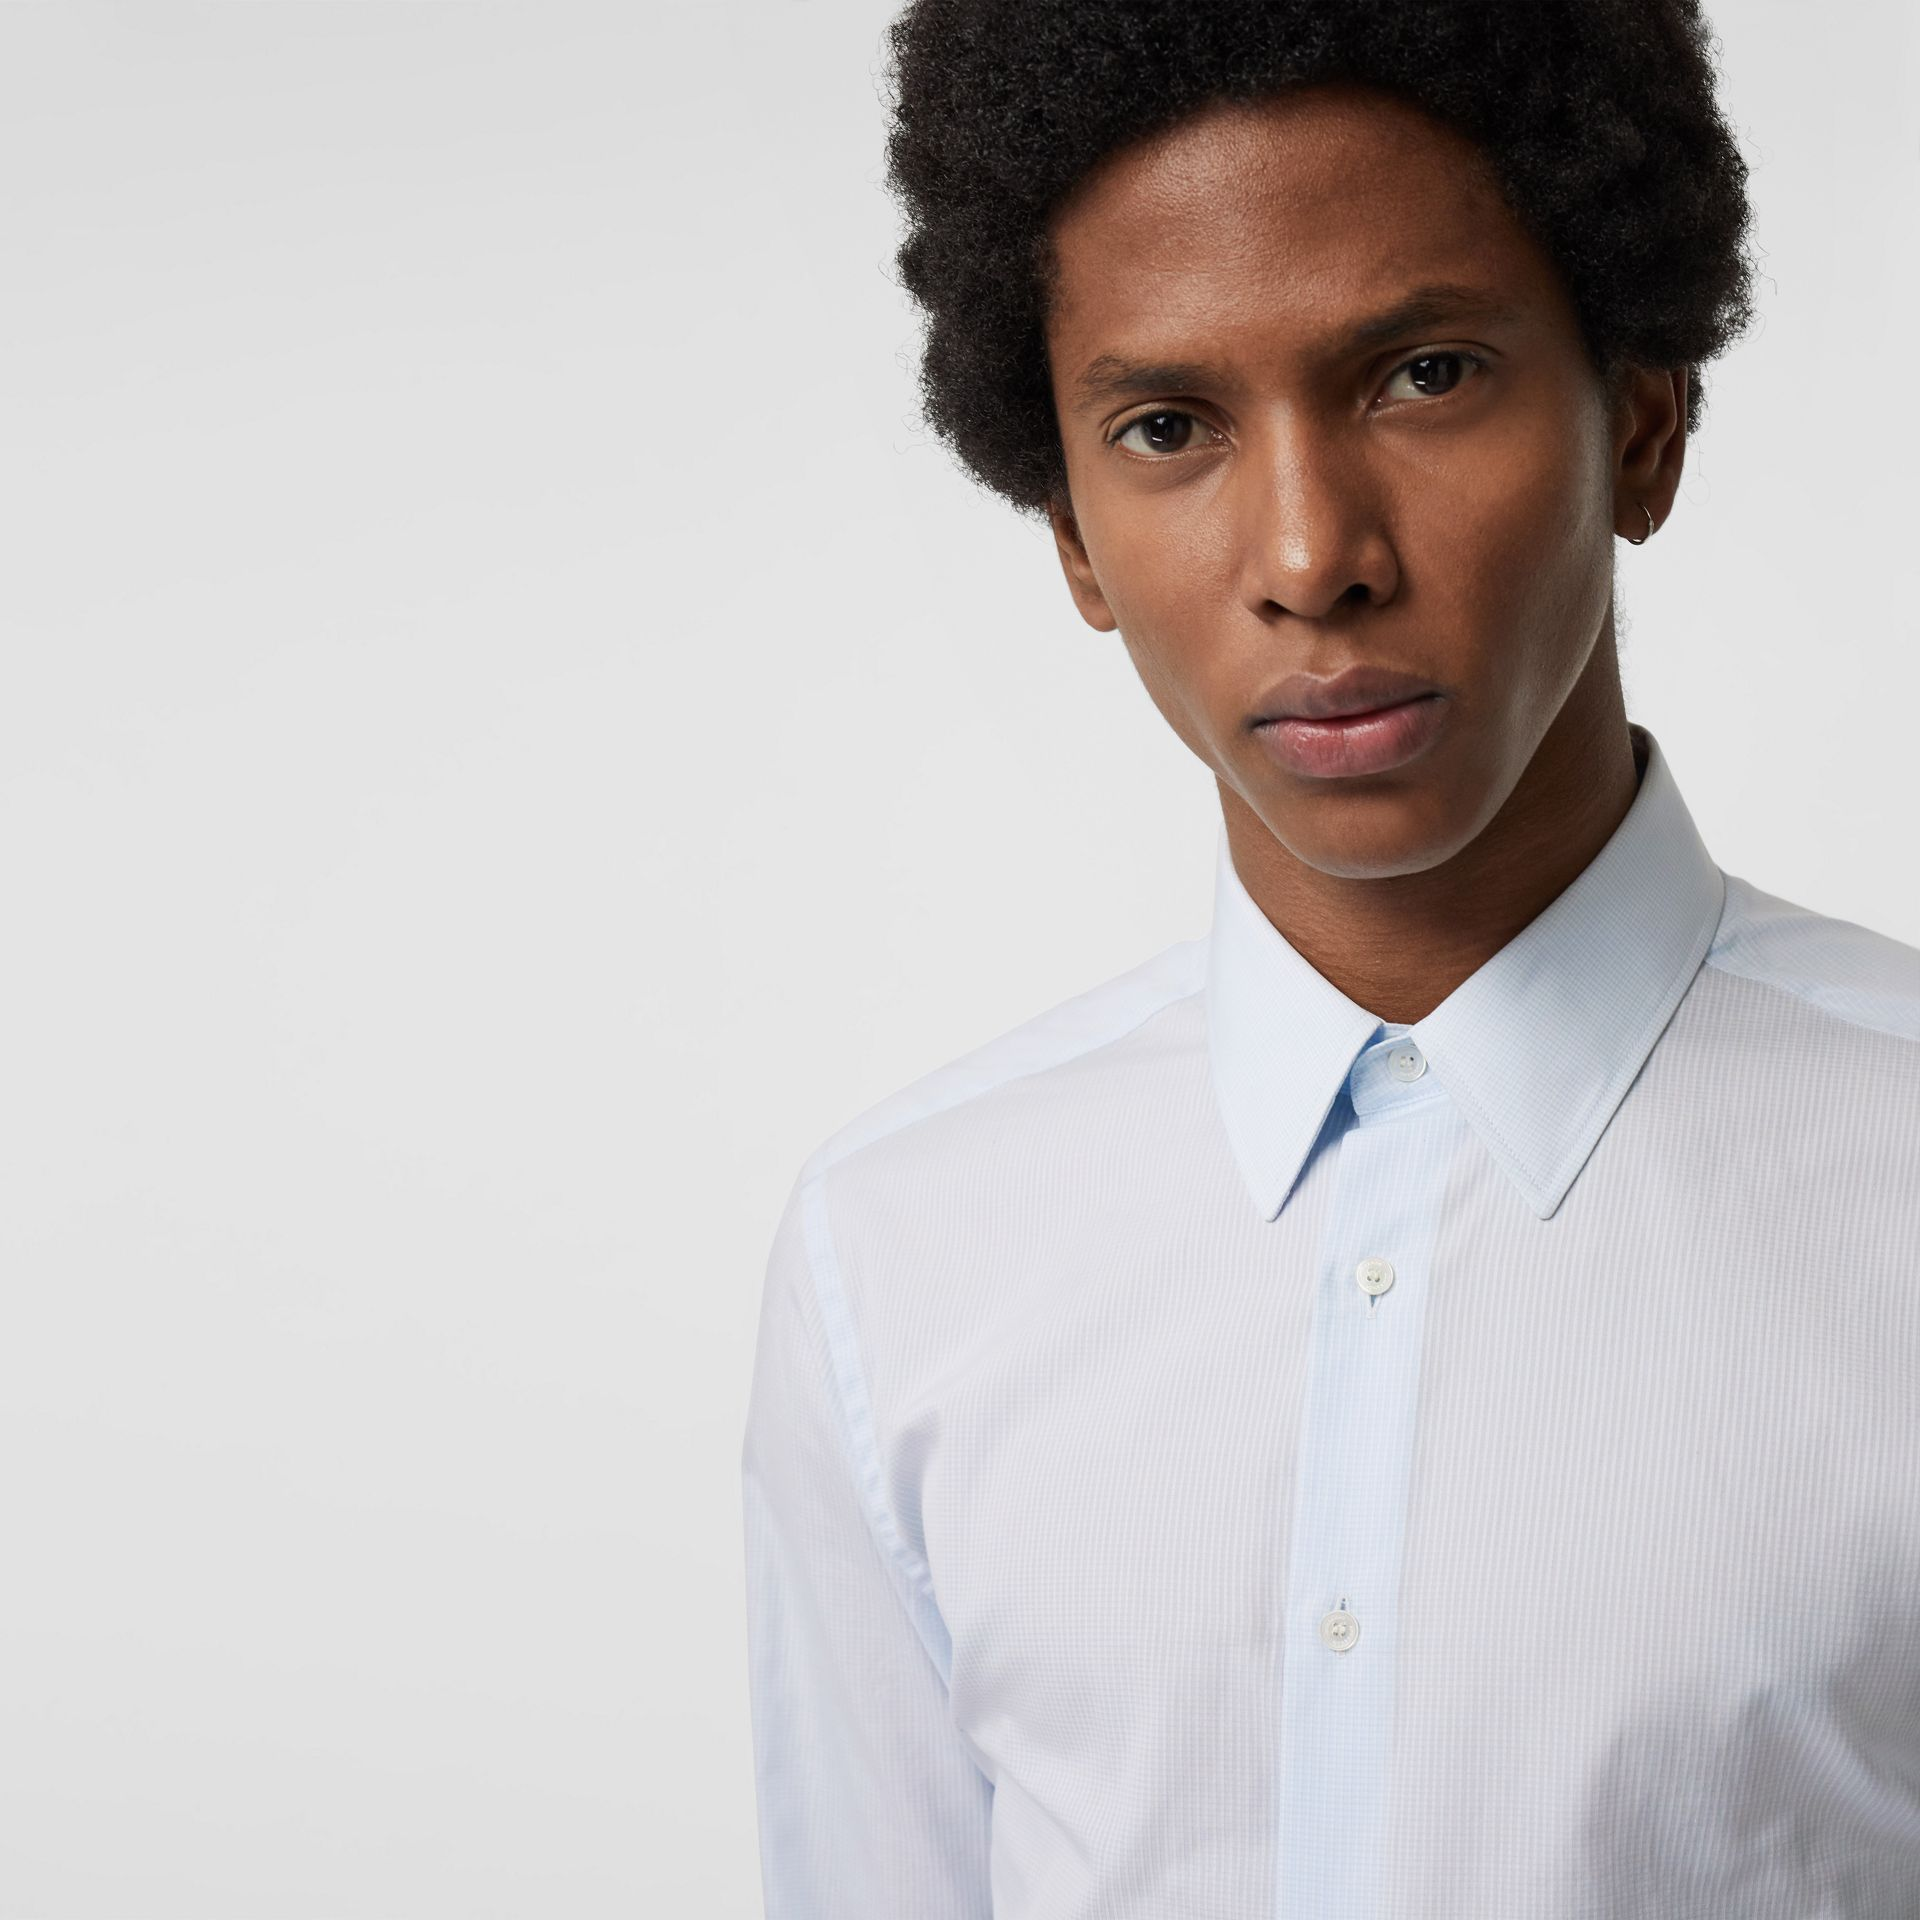 Slim Fit Striped Cotton Poplin Dress Shirt in City Blue - Men | Burberry - gallery image 1